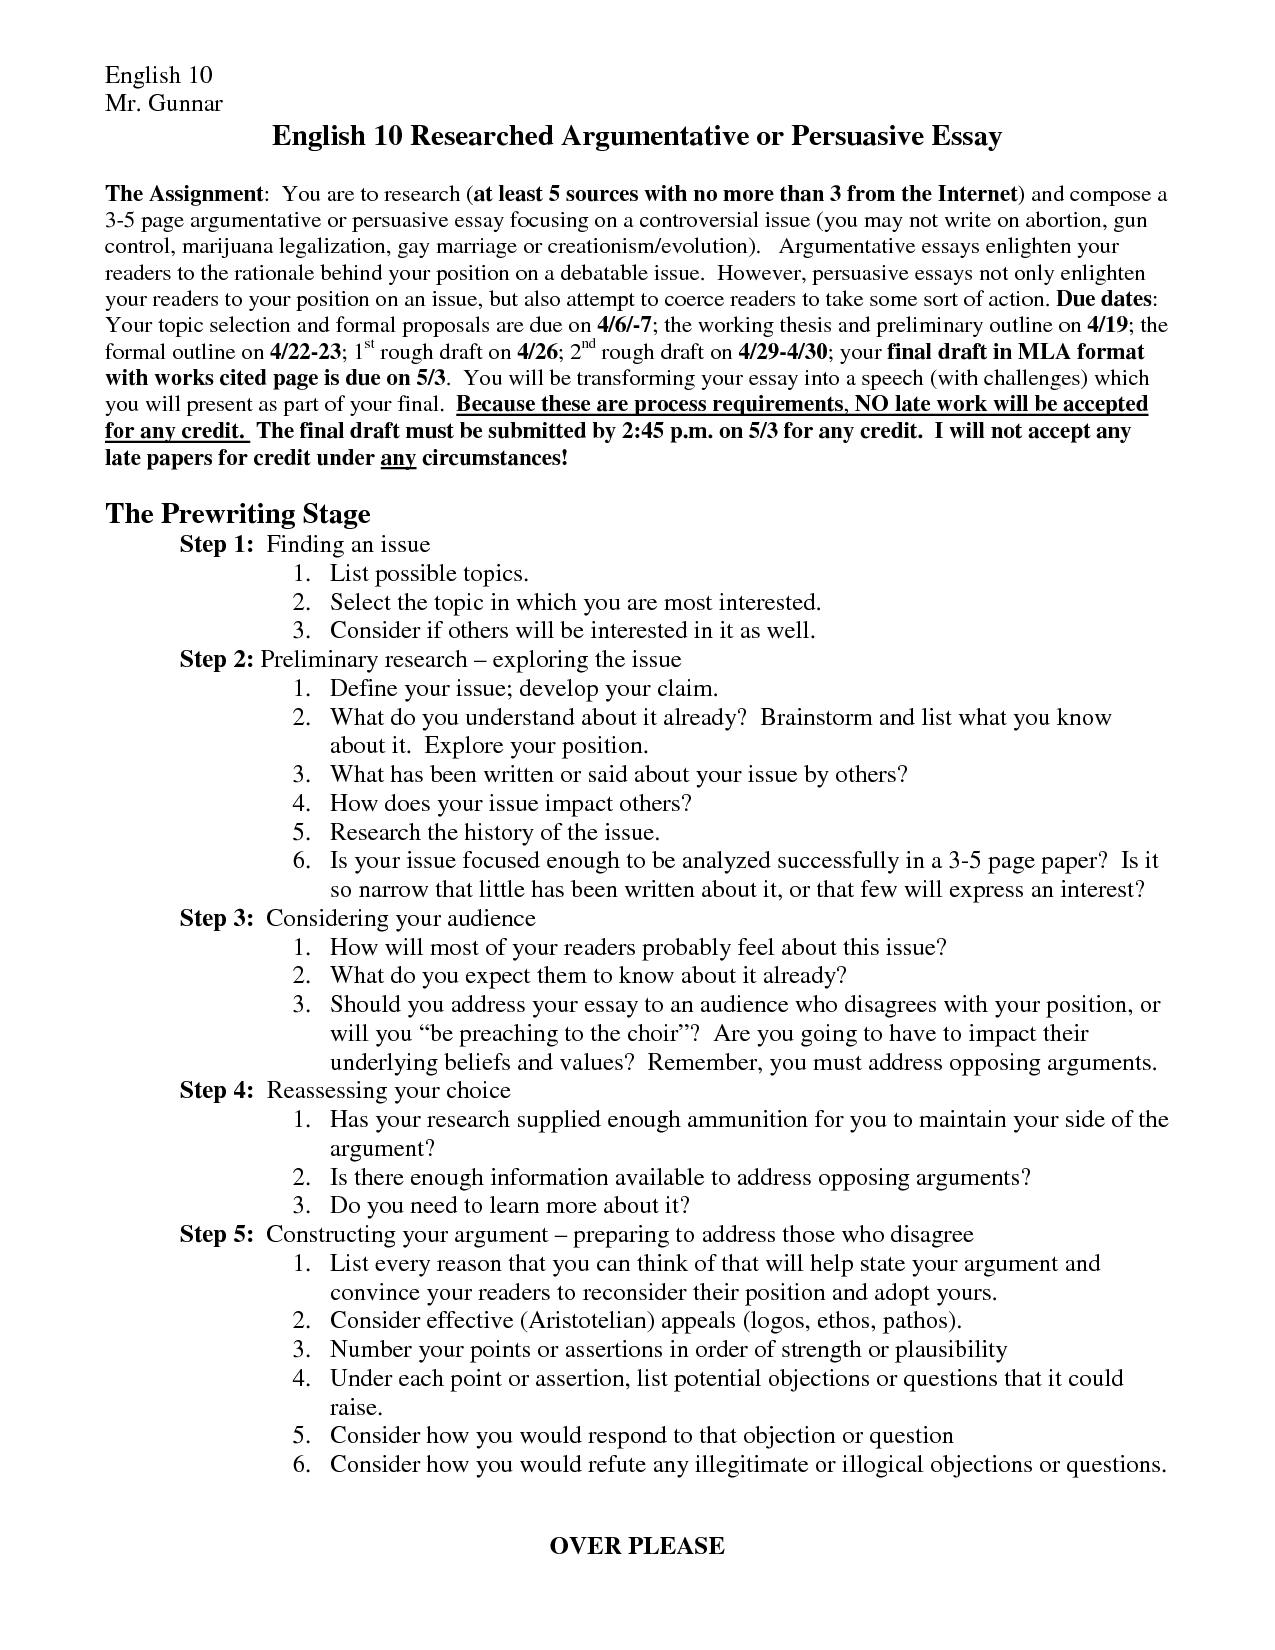 011 Persuasive Research Paper Topic Mla Format Argumentative Essay Outline 472291 Awful Writing Prompts For Middle Schoolers Topics About Health Animals Full